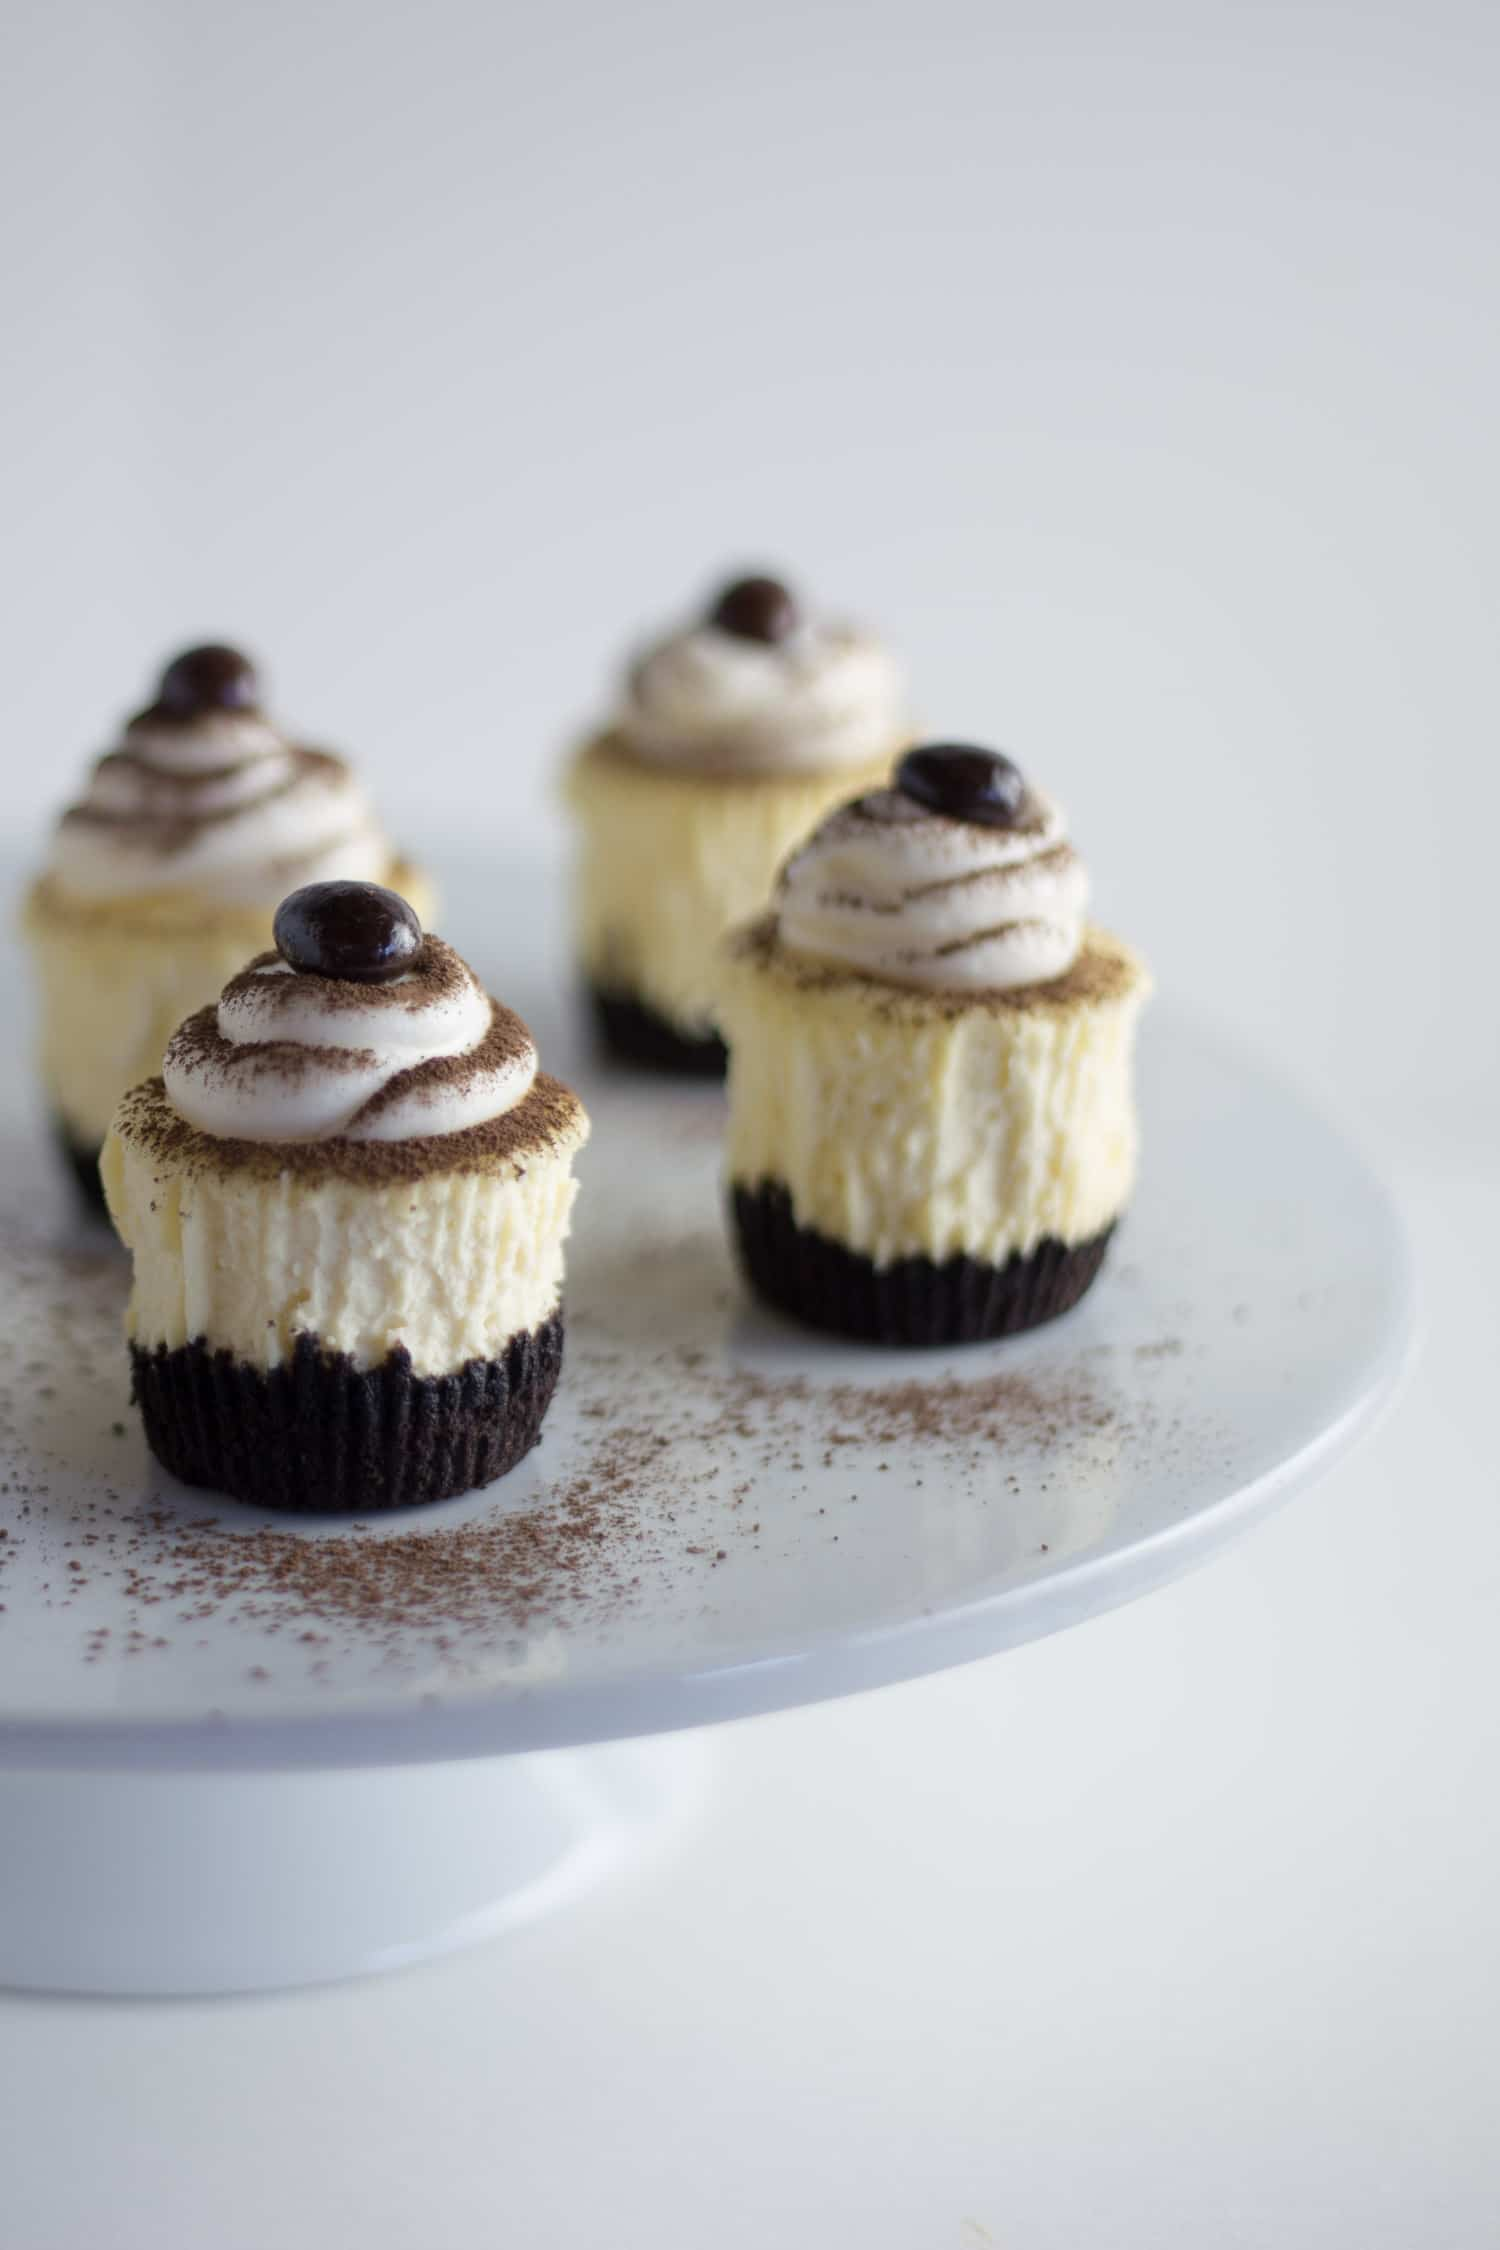 Creamy mini cheesecakes are a delicious hand held dessert that are perfect for holiday entertaining! |artzy foodie.com|